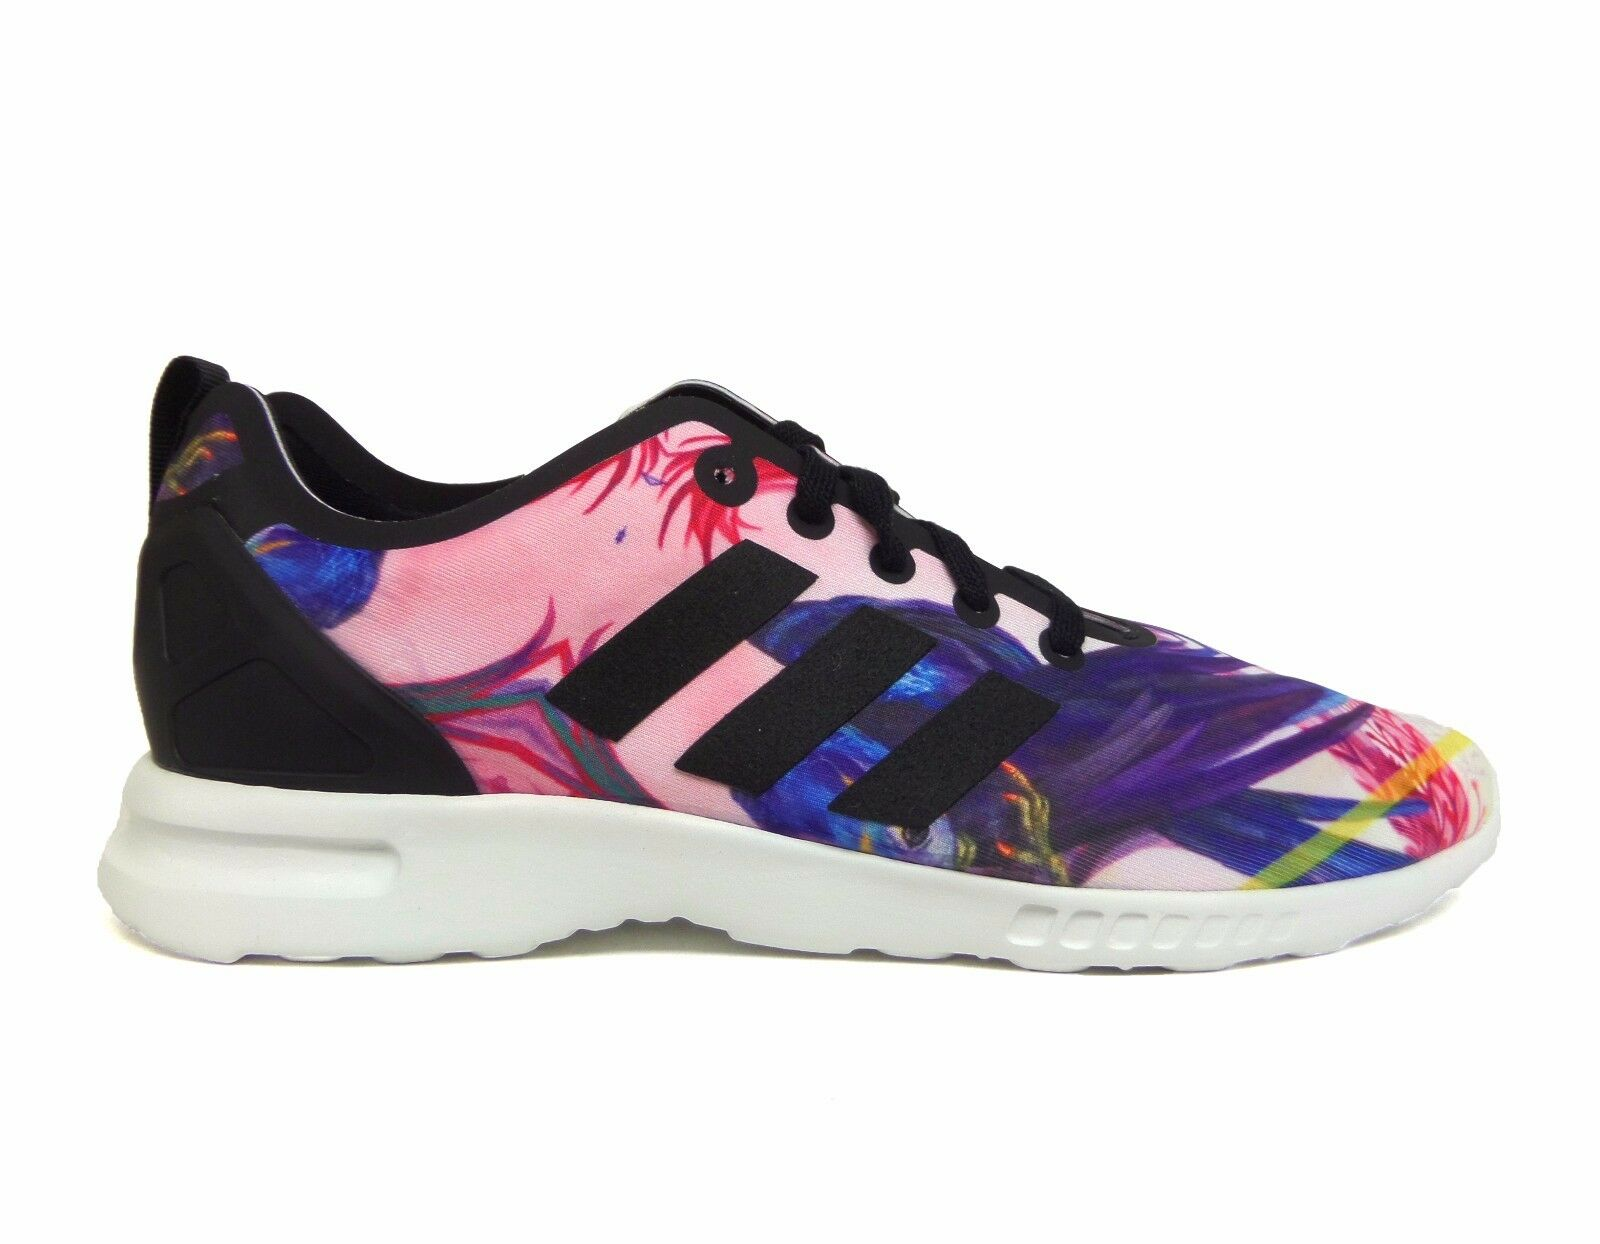 Adidas Women's ZX FLUX SMOOTH Shoes Print/Black S82937 a1